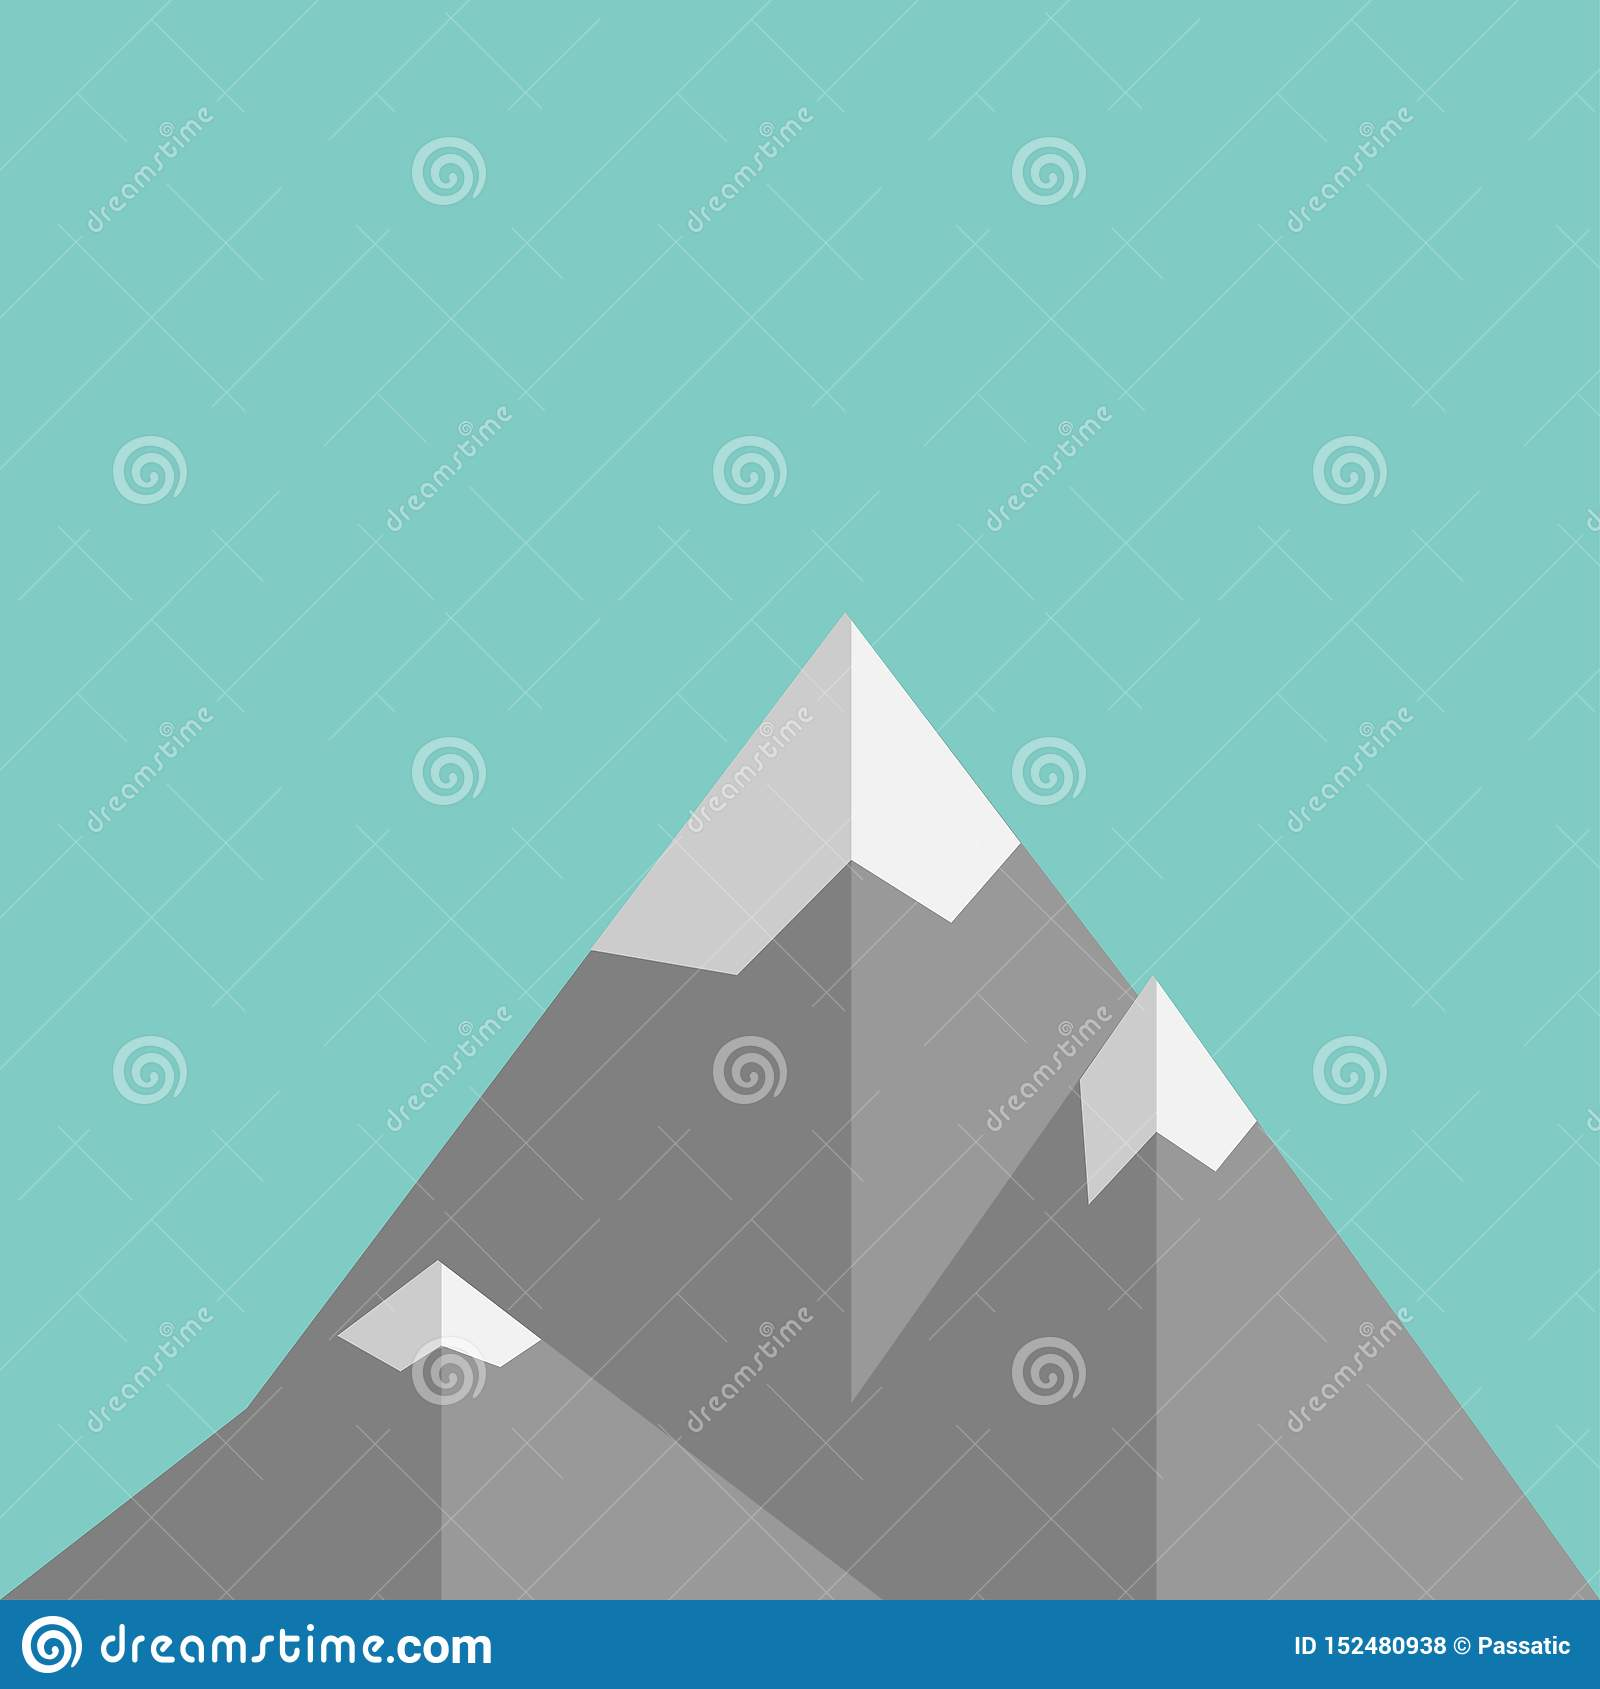 Mountains in flat design on green background